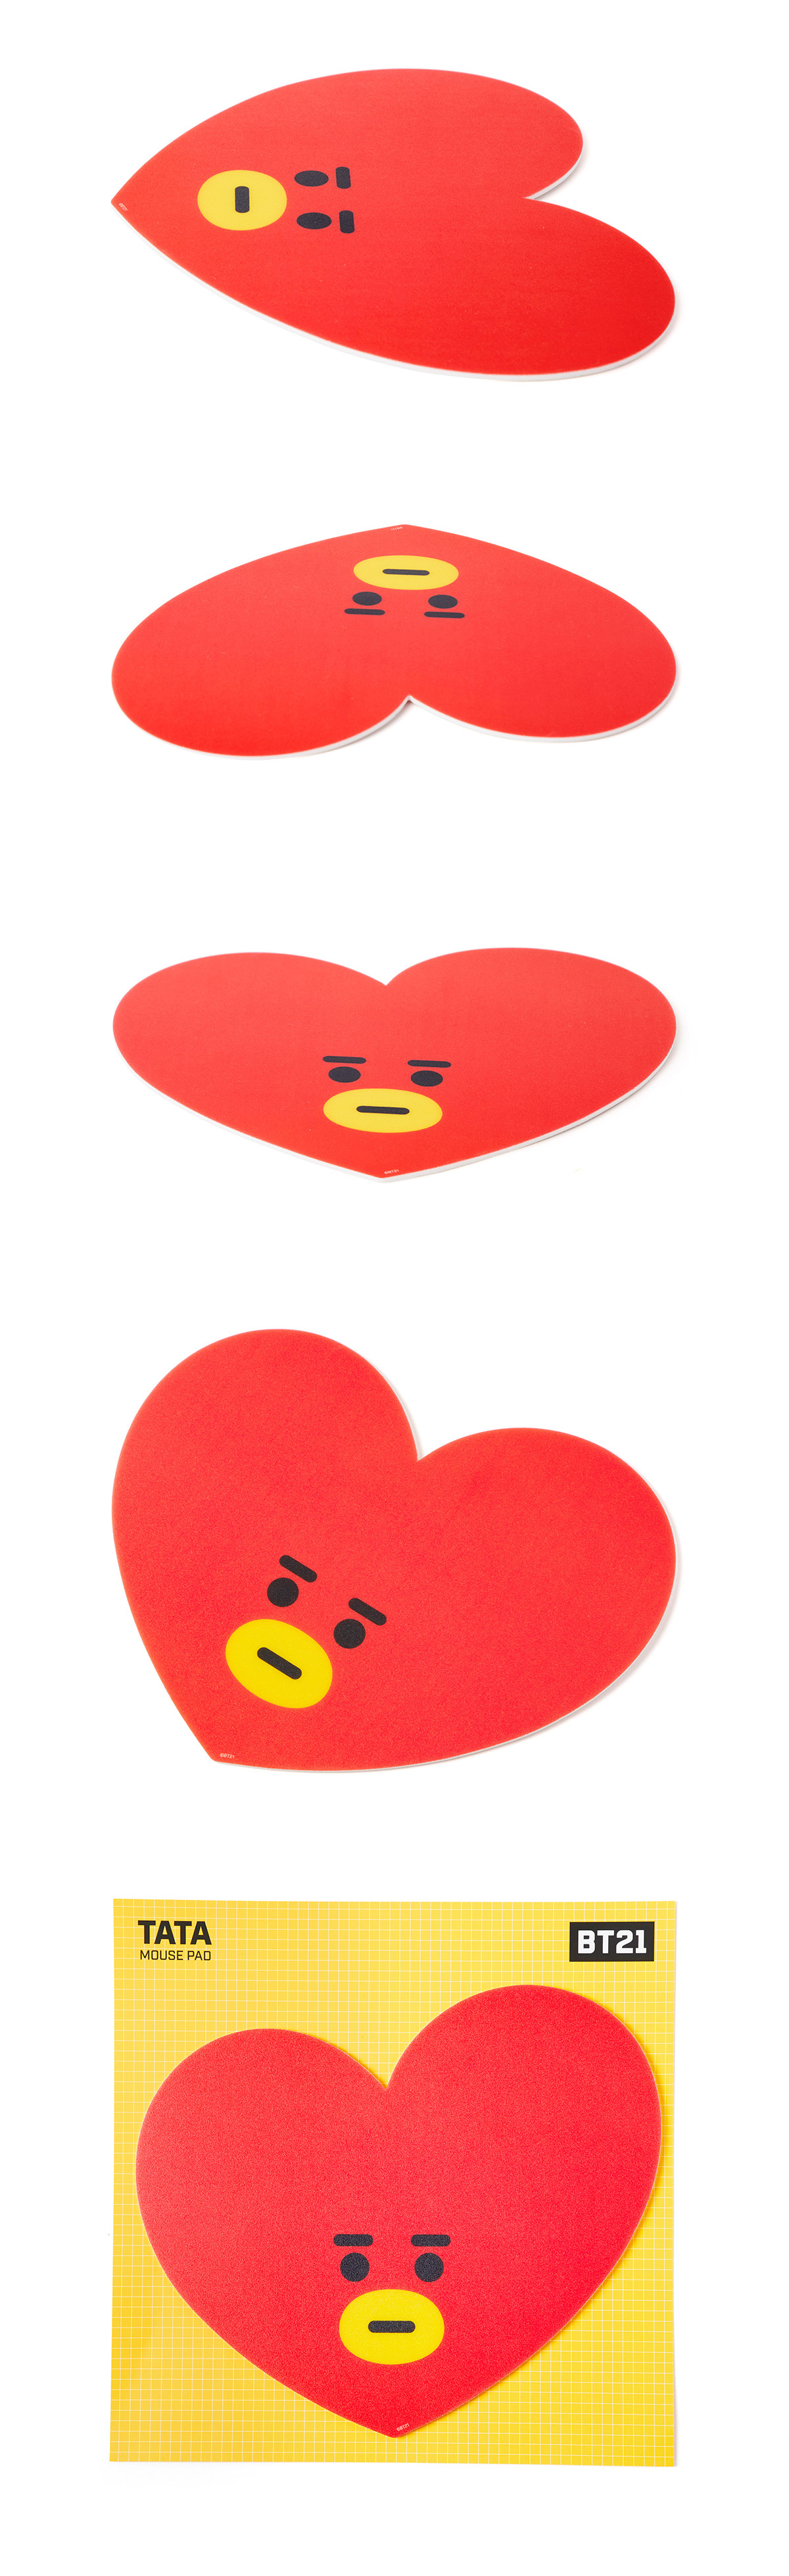 bt21_mousepad_02.jpg